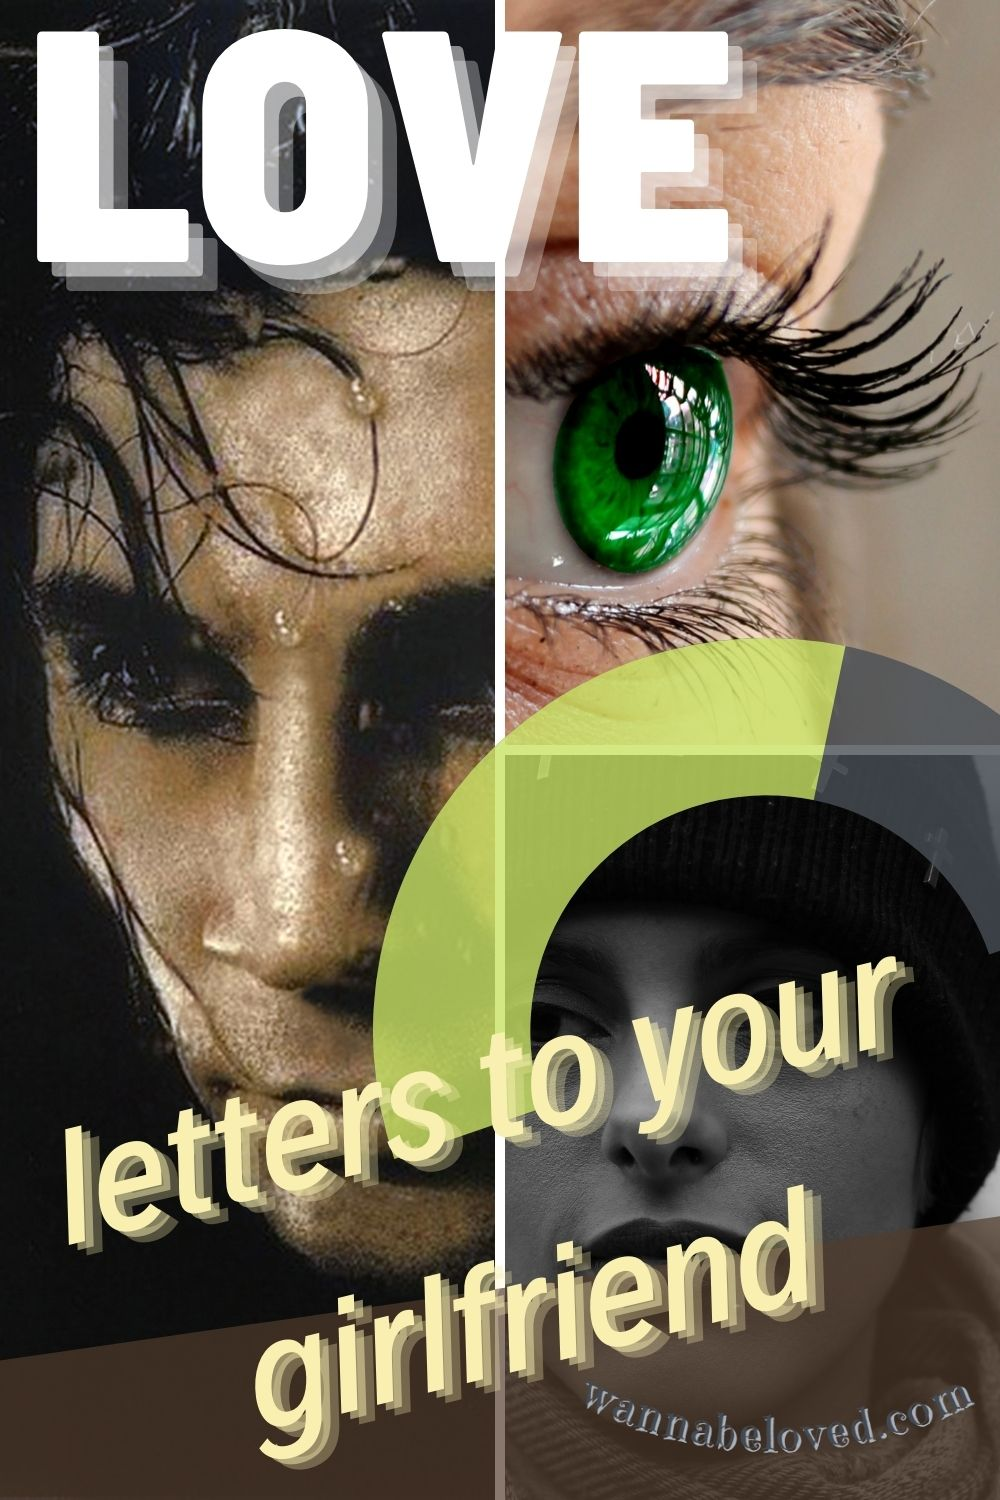 Letters To A Loved One